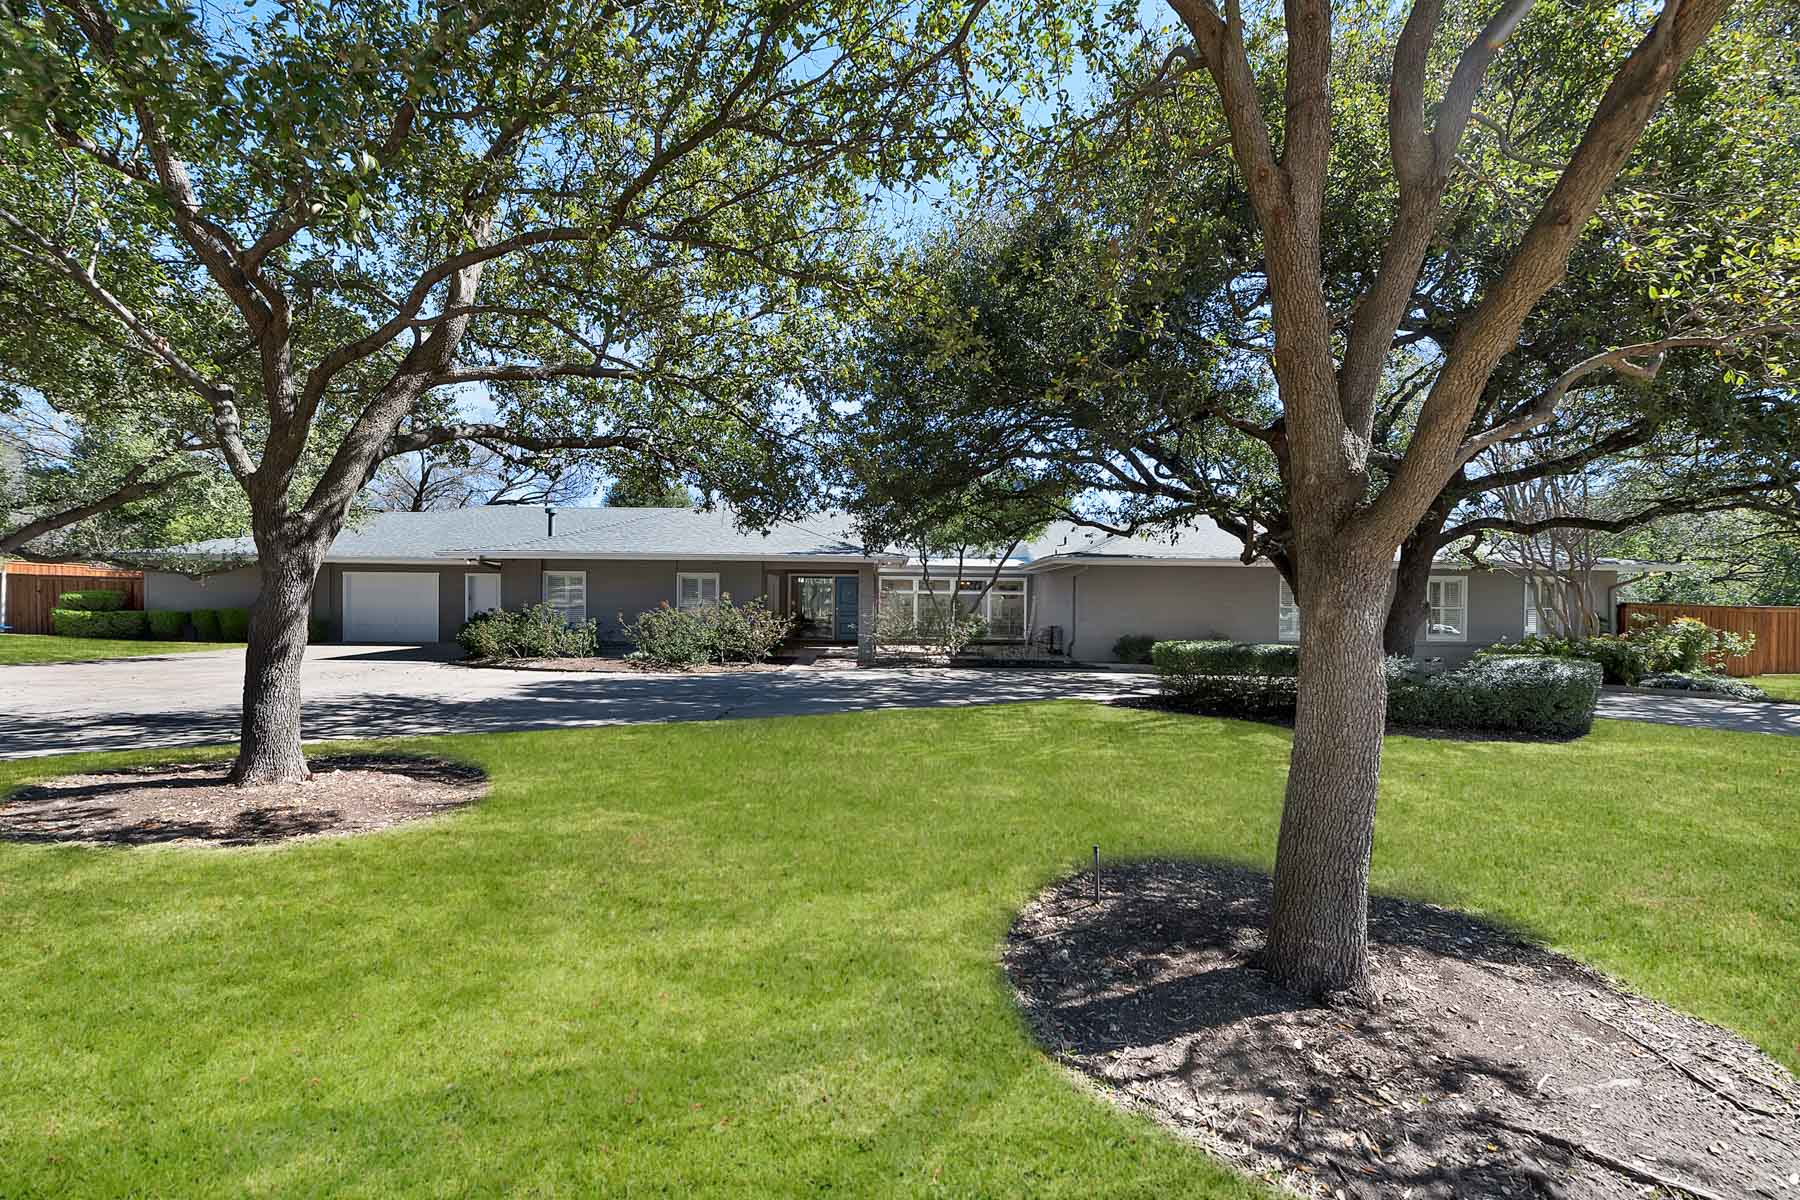 Single Family Home for Sale at Ridglea, Mid-Century Modern Ranch 4225 Ridgehaven Rd Fort Worth, Texas, 76116 United States